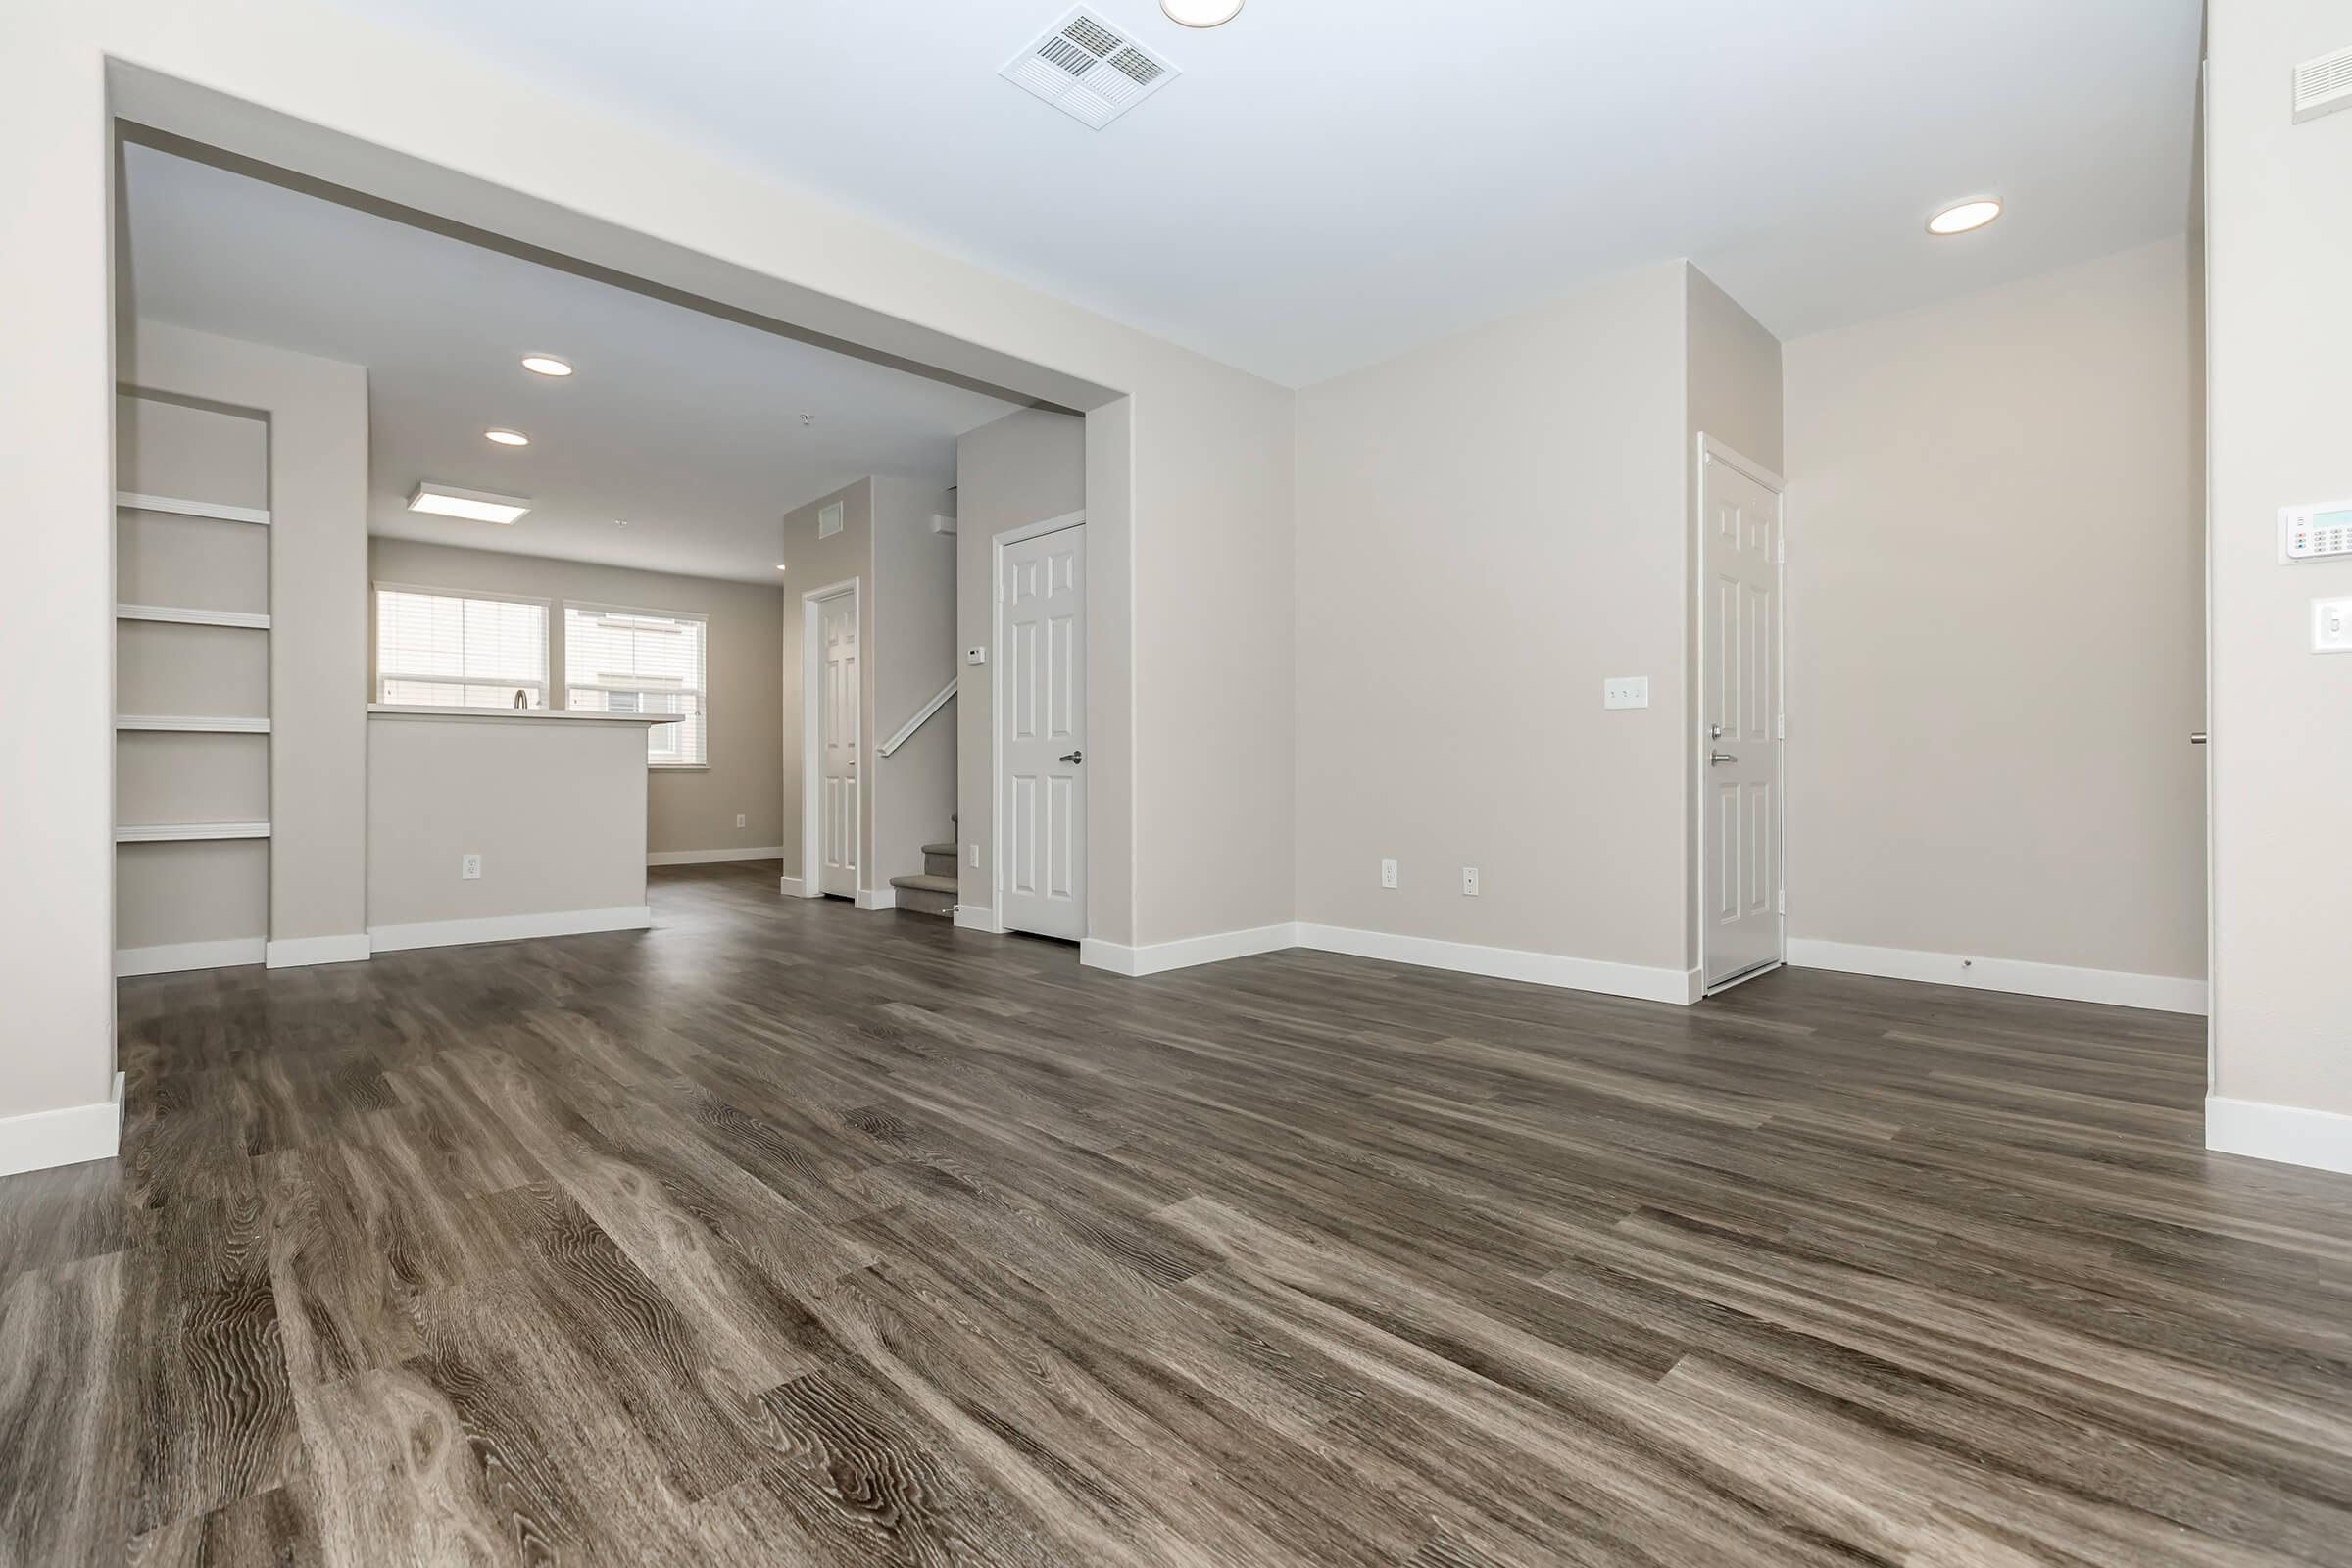 Unfurnished living room and dining room with wooden floors